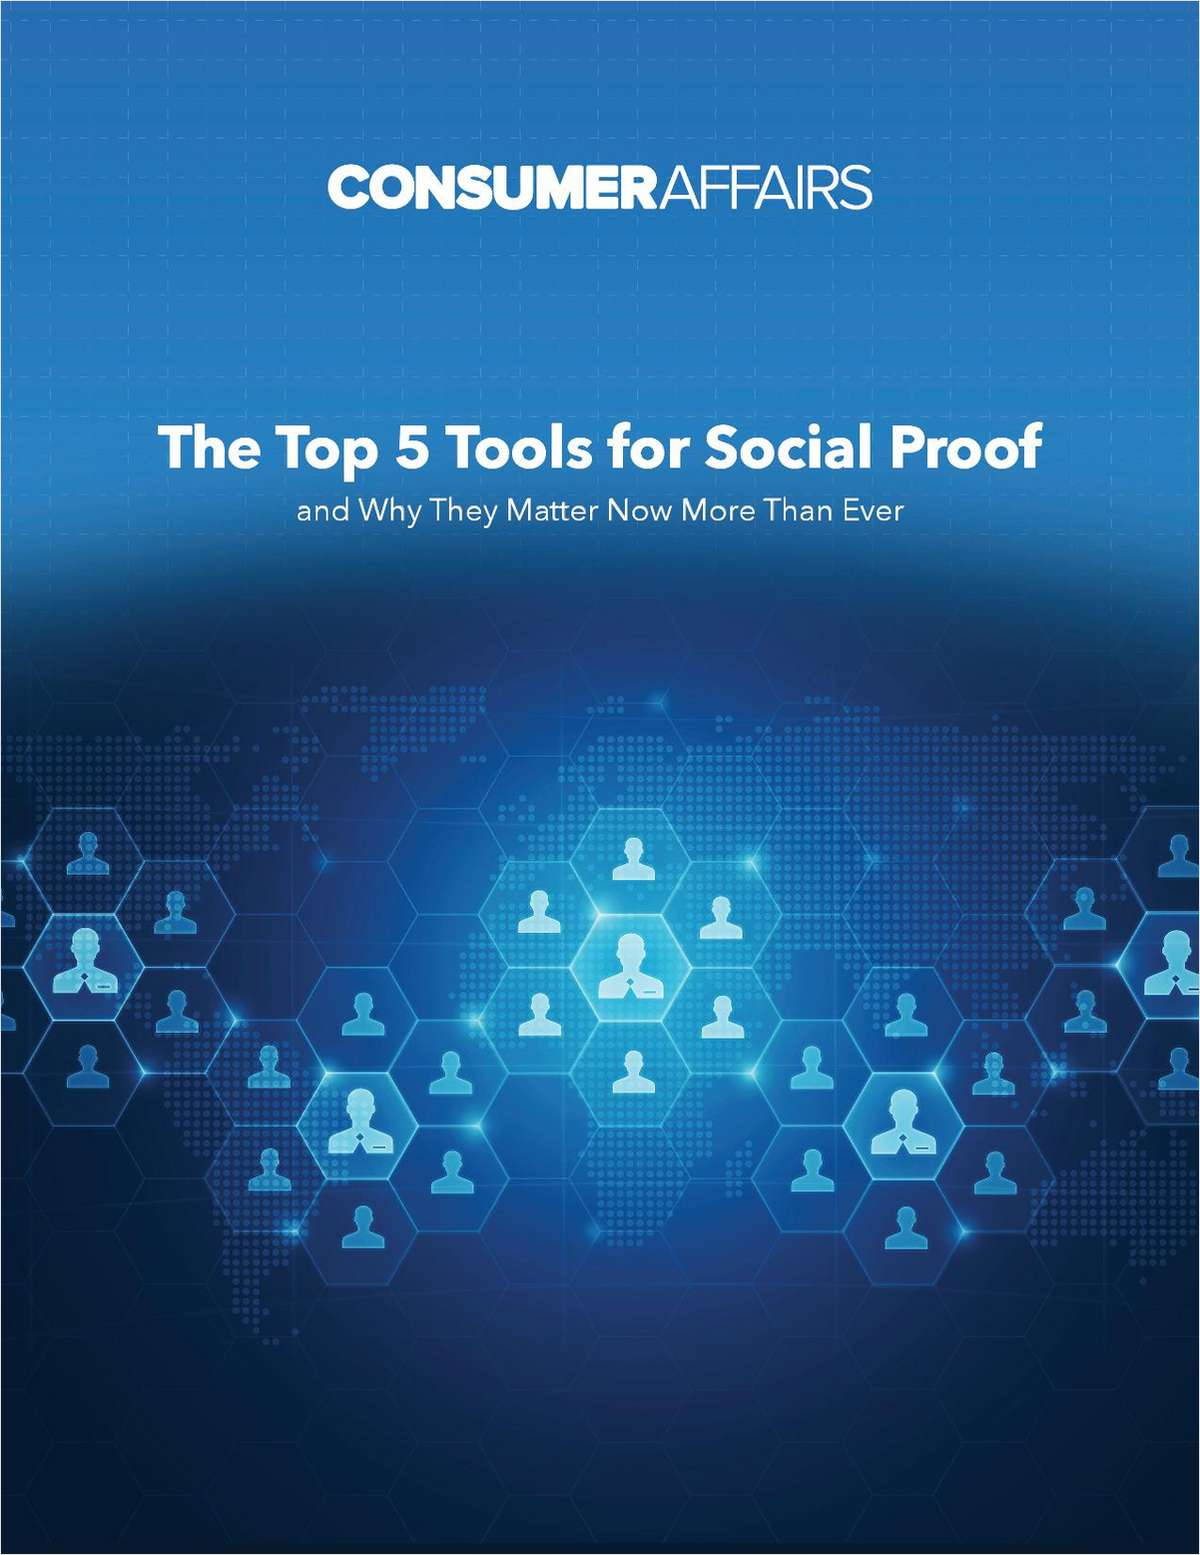 The Top 5 Tools for Social Proof (and Why They Matter Now More Than Ever)